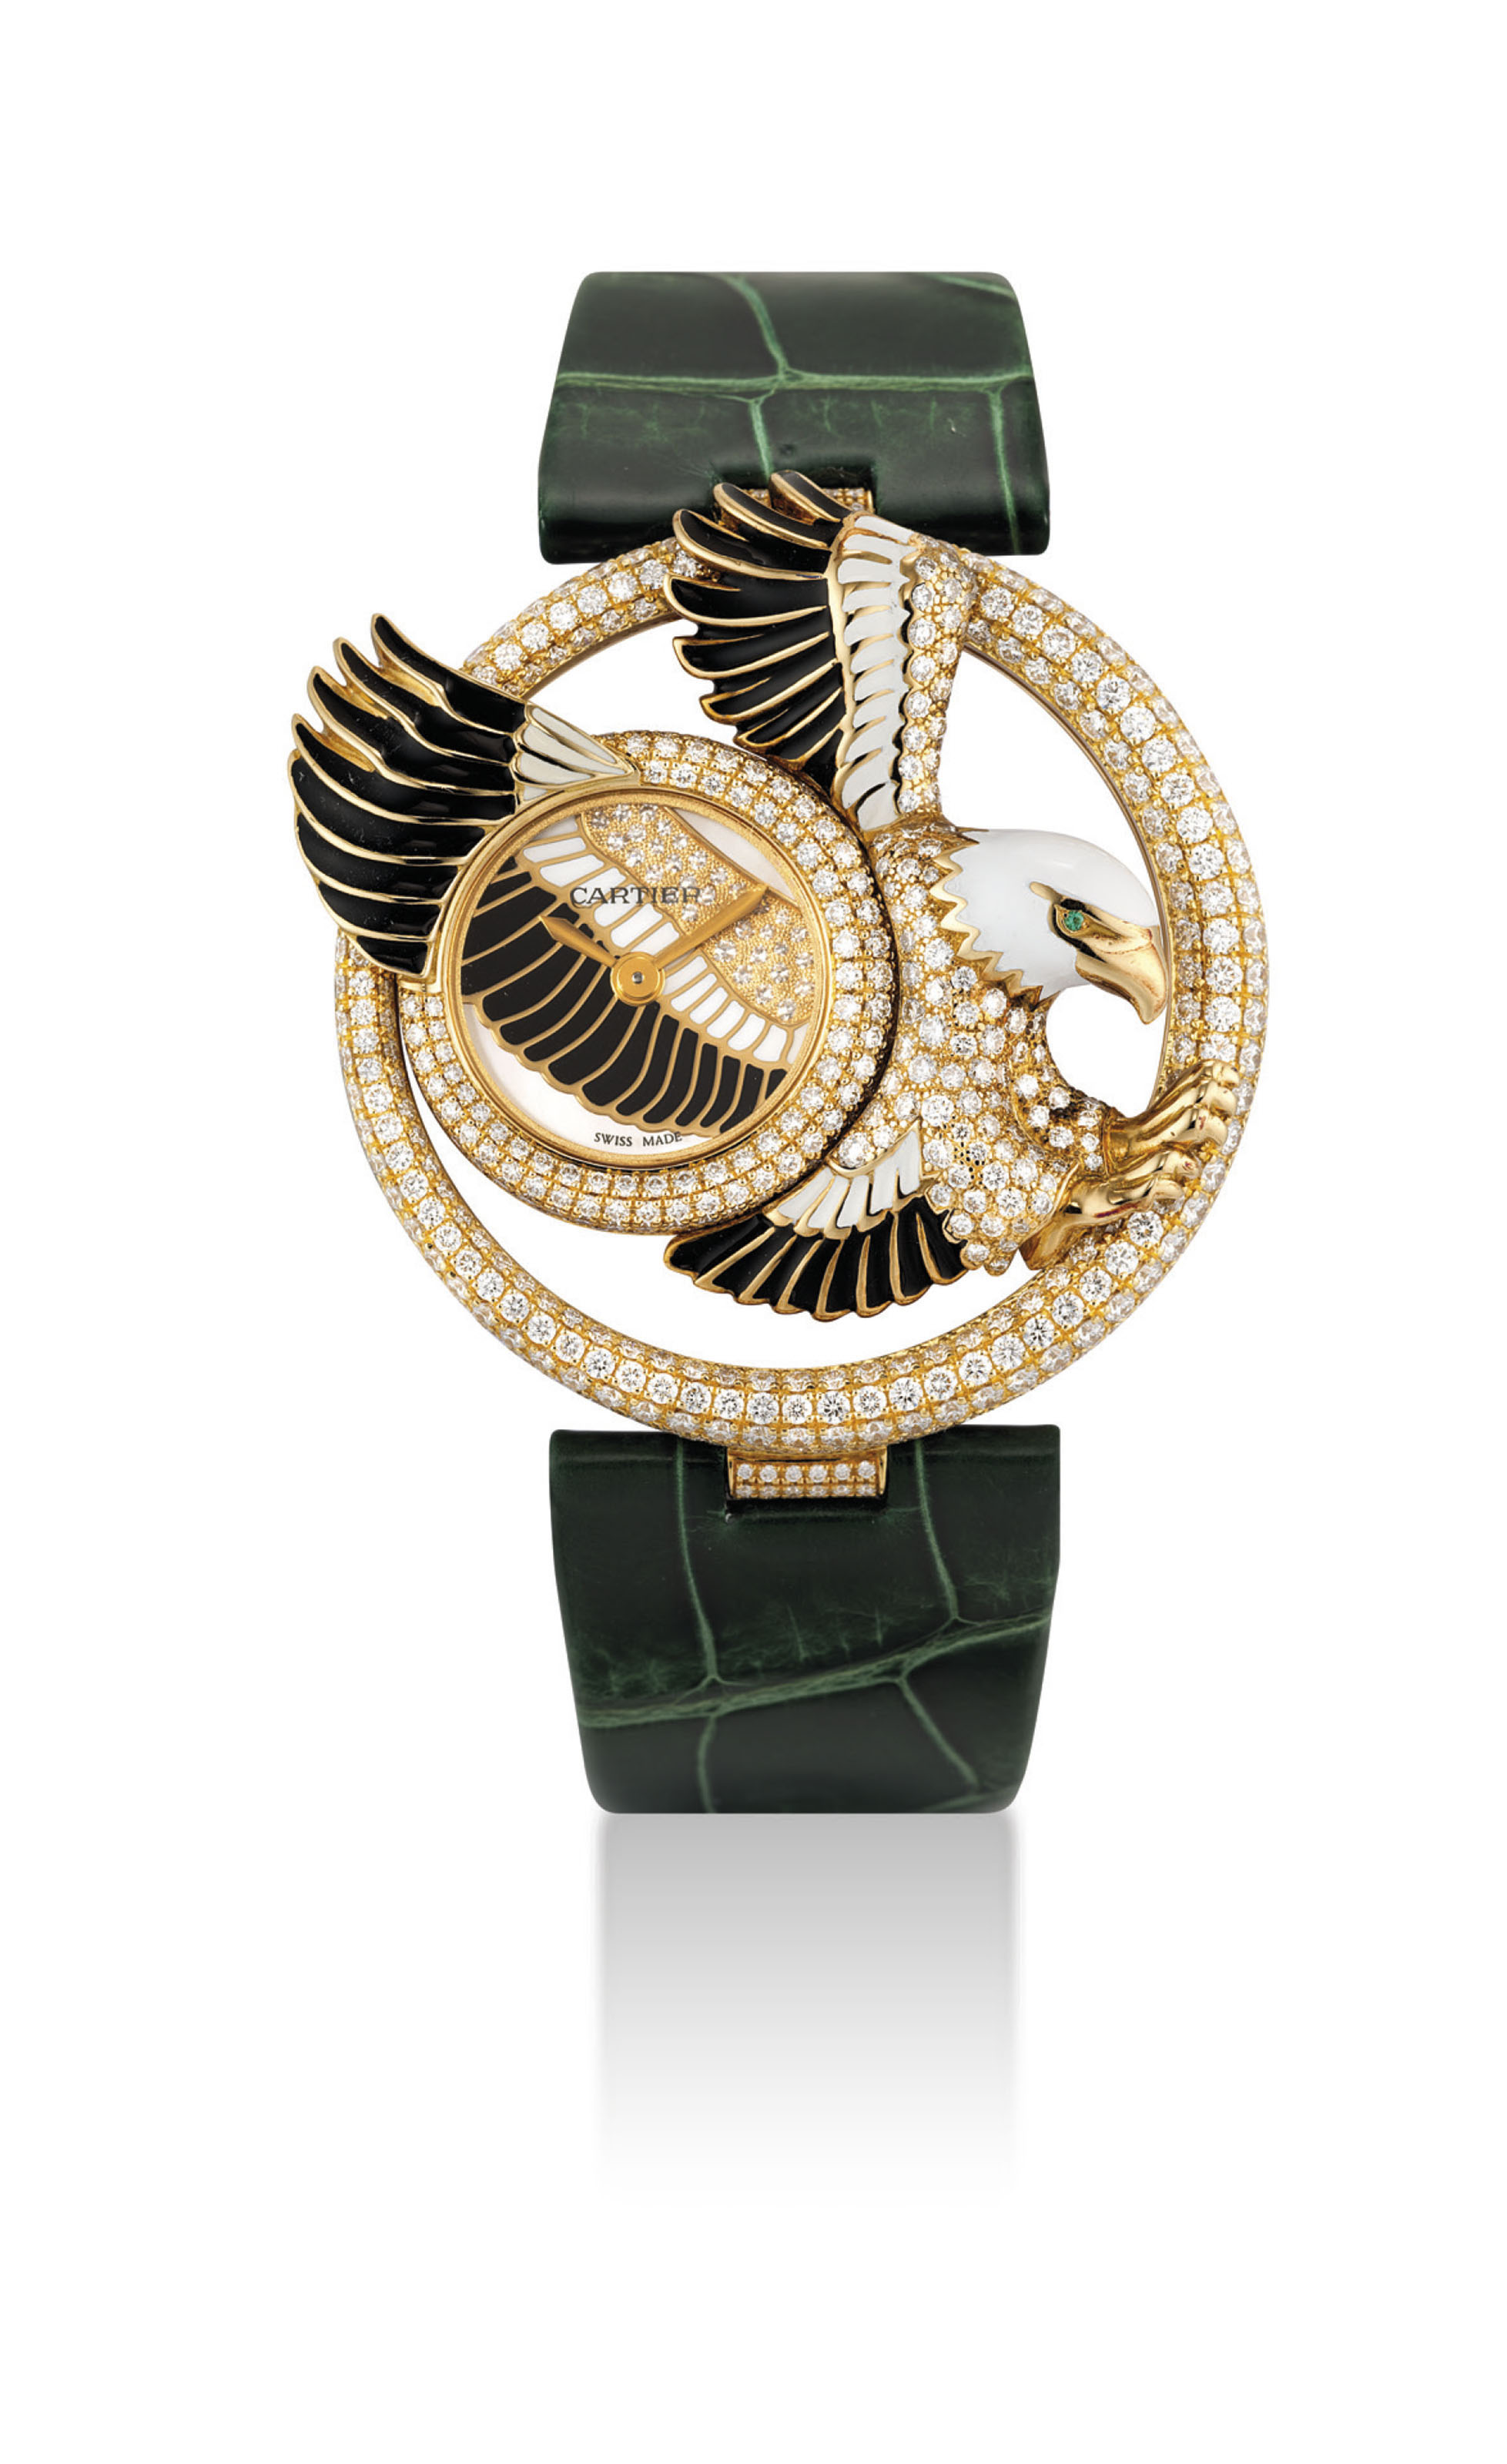 CARTIER. A LADY'S FINE AND VERY RARE 18K GOLD, ENAMEL, DIAMOND AND EMERALD-SET LIMITED EDITION WRISTWATCH